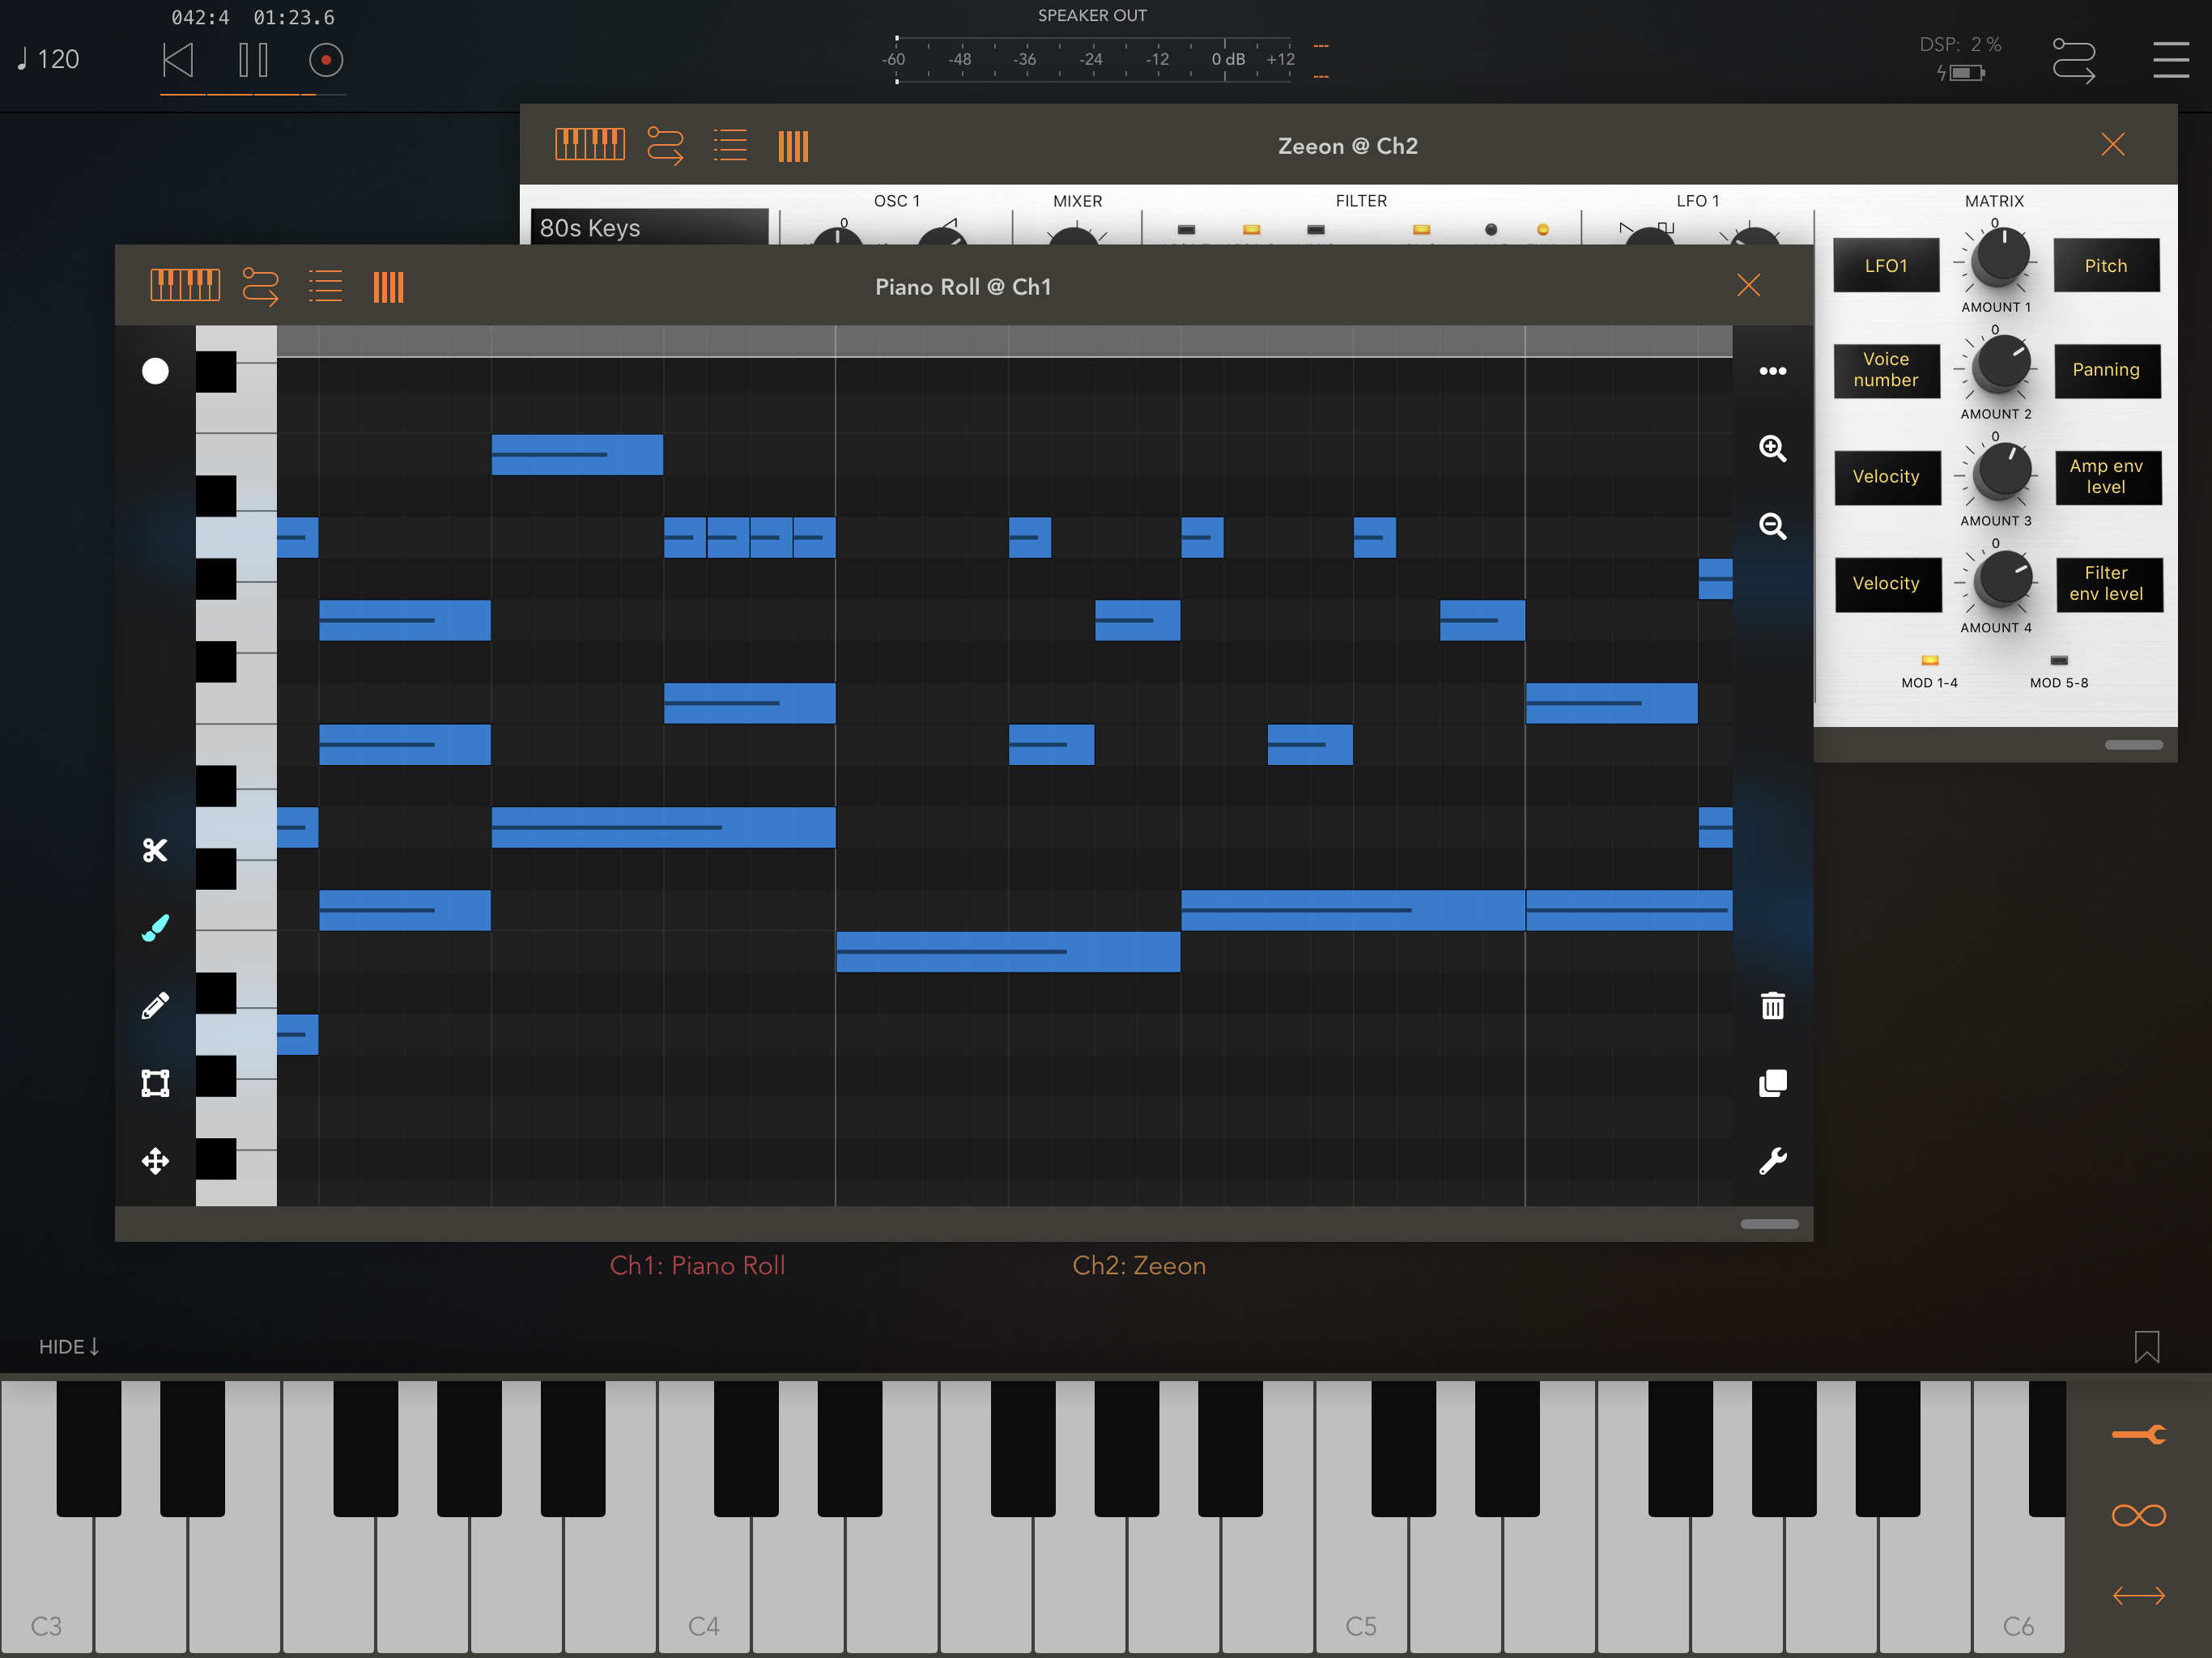 fl studio 12 piano roll scale